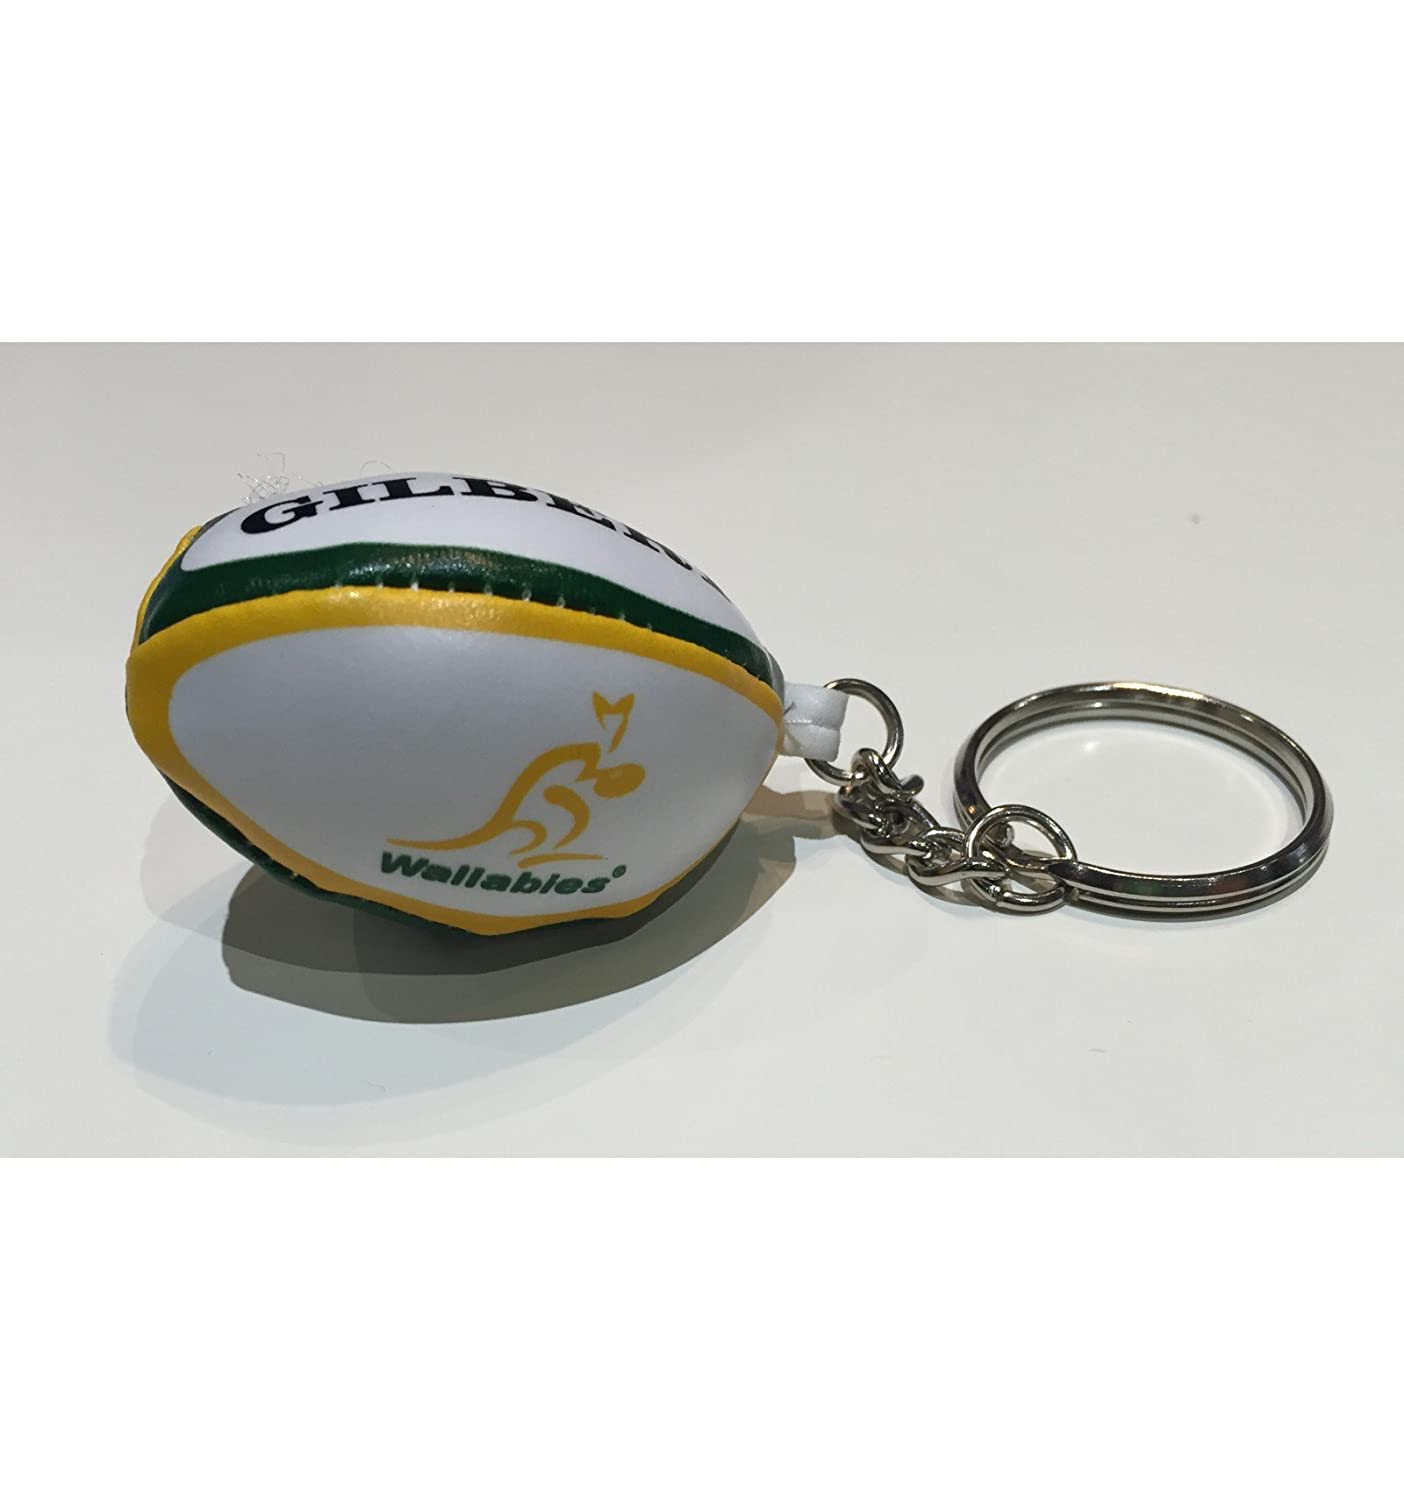 GILBERT australiano wallabies pelota rugby llavero: Amazon ...